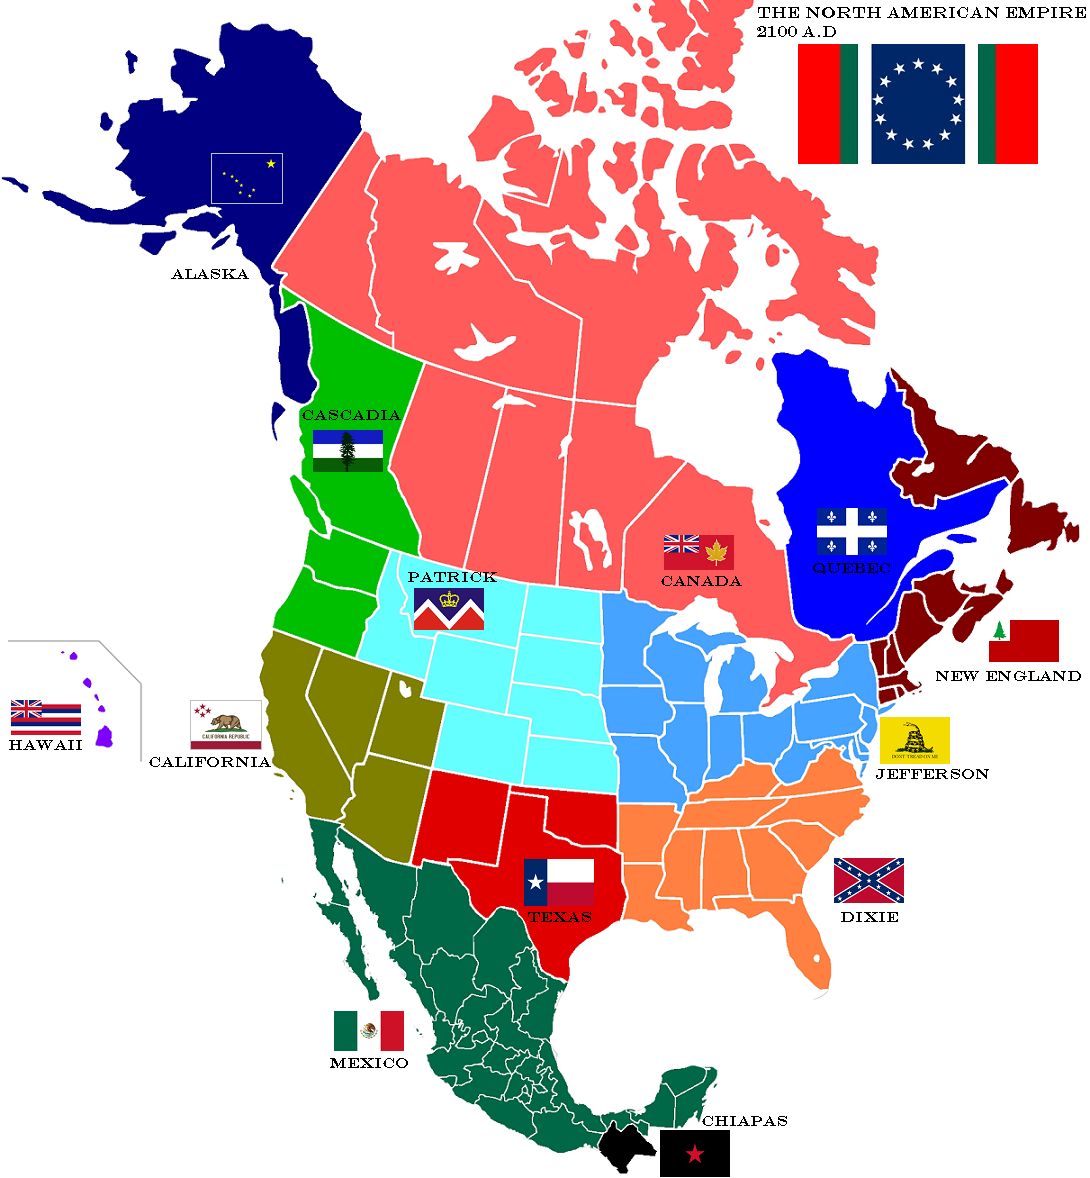 Map Of North American Empire By Lamnay On DeviantART Harbingers - Map of america